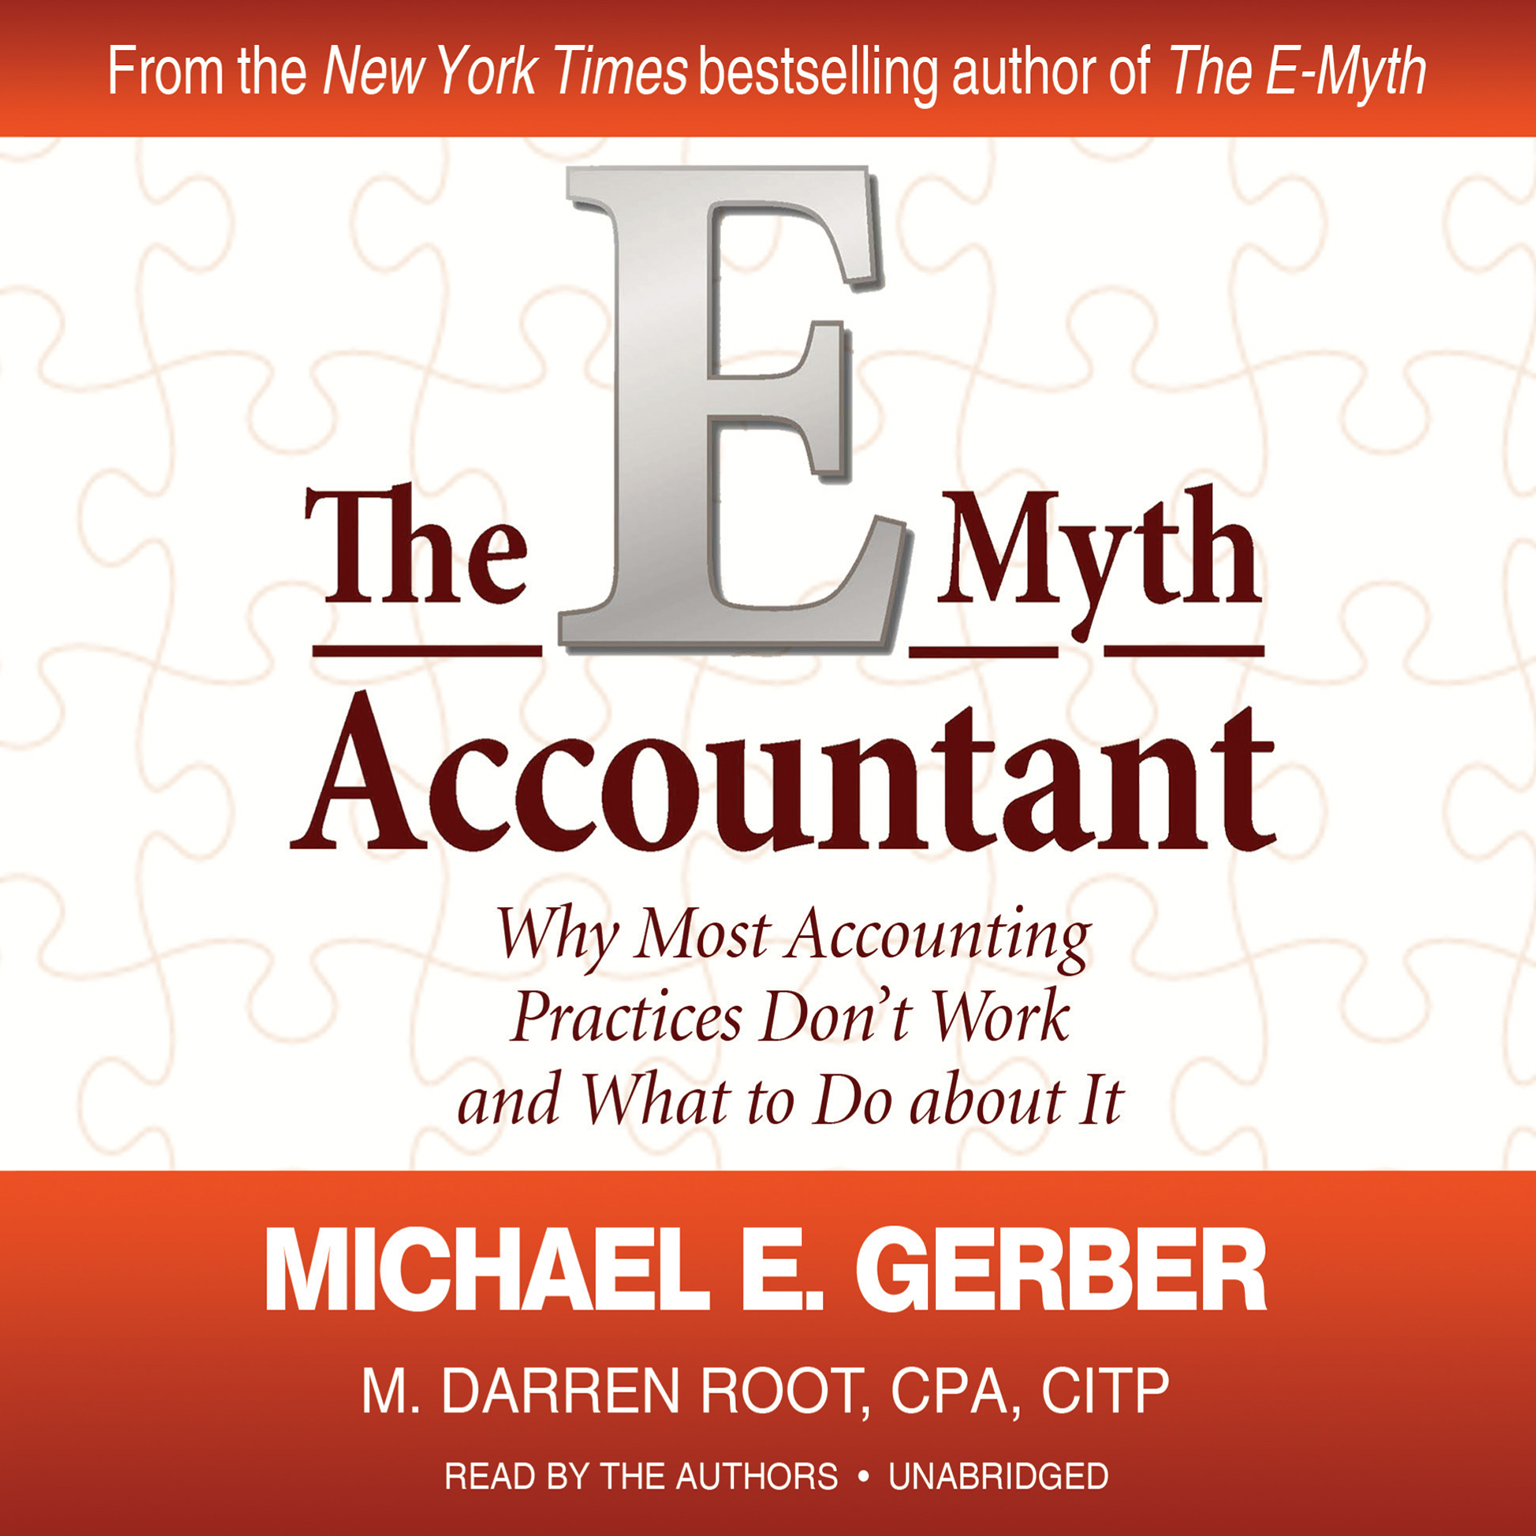 Printable The E-Myth Accountant: Why Most Accounting Practices Don't Work and What to Do about It Audiobook Cover Art